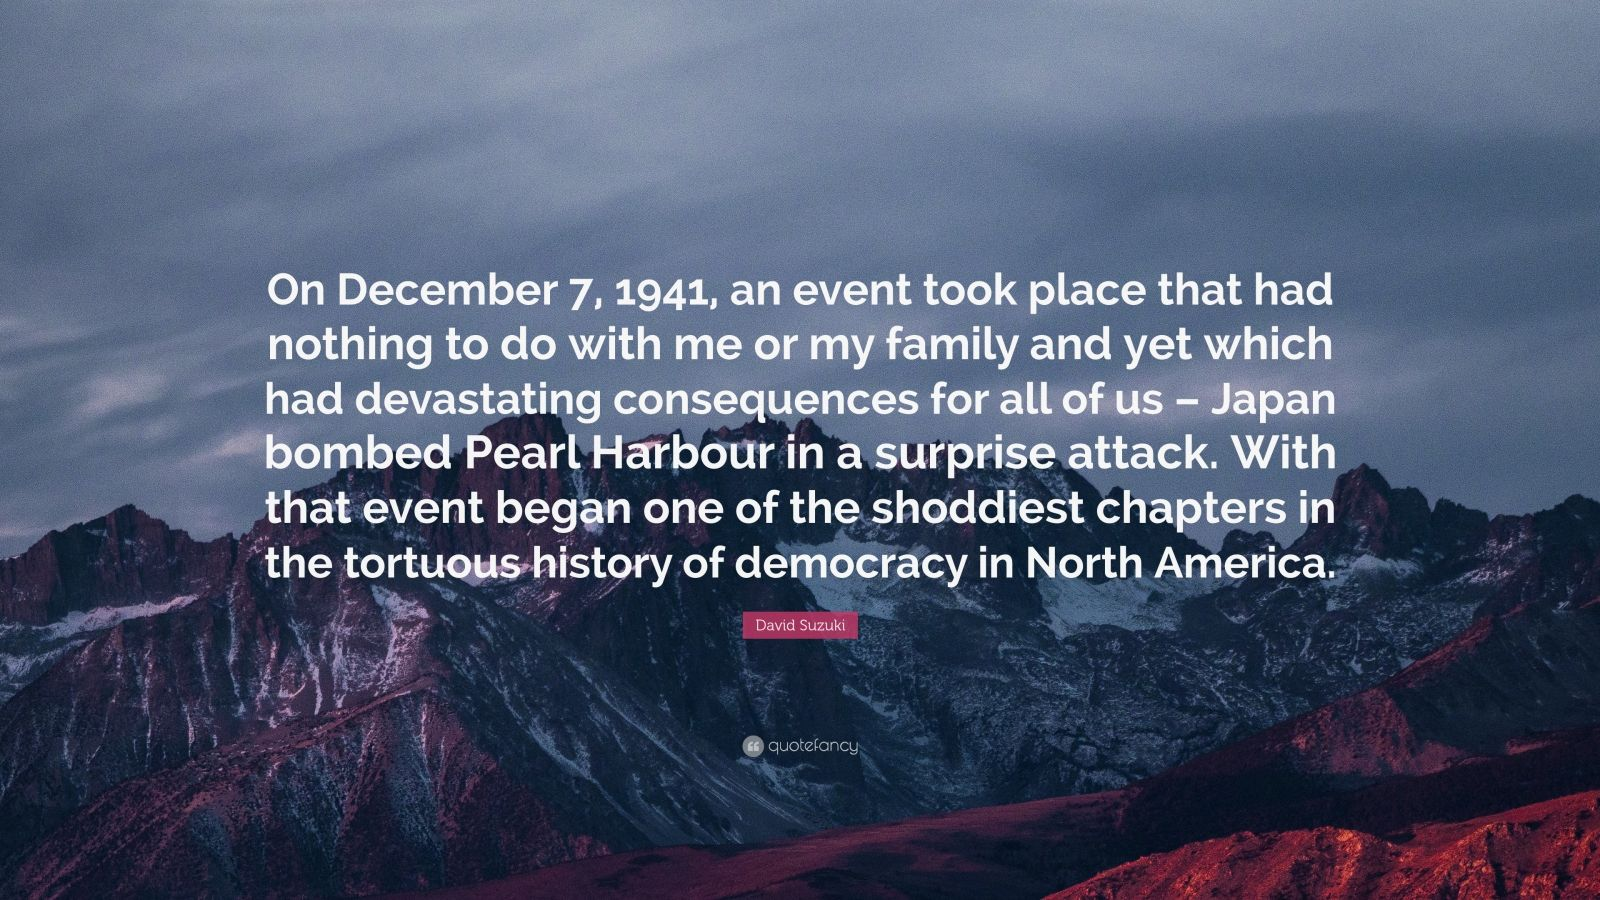 "David Suzuki Quote: ""On December 7, 1941, an event took place that had nothing to do with me or my family and yet which had devastating consequences for all of us – Japan bombed Pearl Harbour in a surprise attack. With that event began one of the shoddiest chapters in the tortuous history of democracy in North America."""